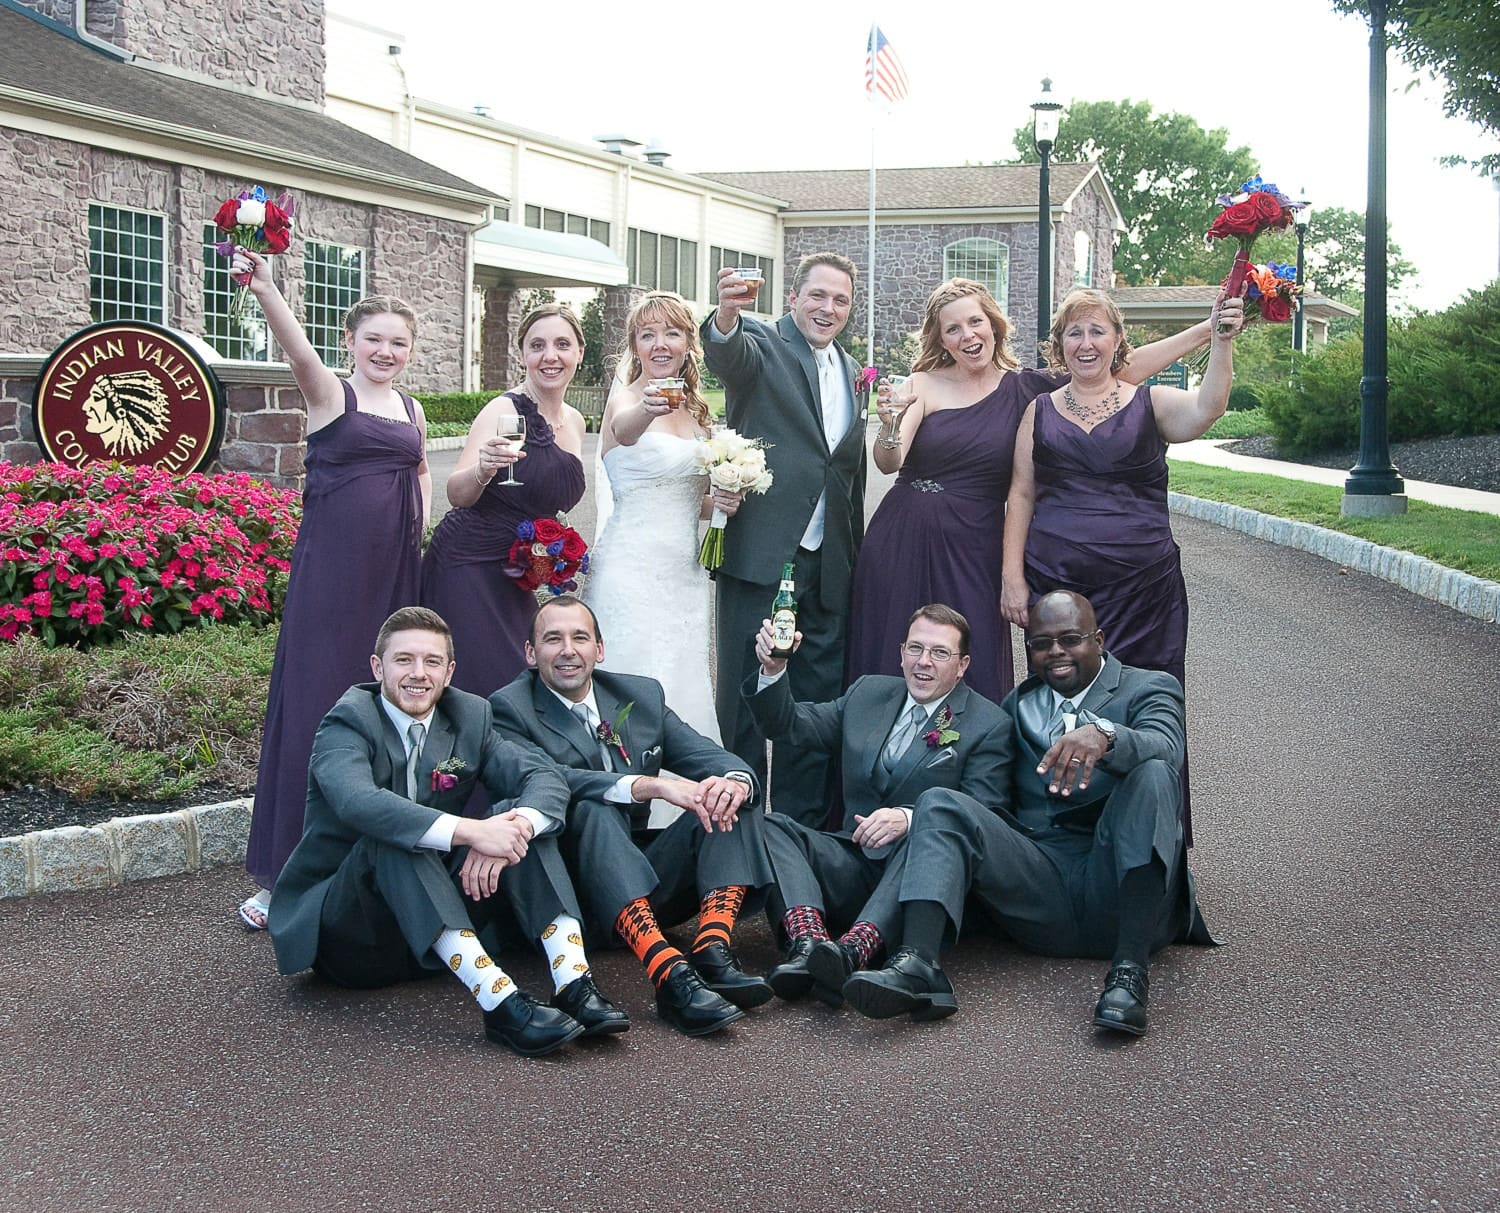 groomsmen with funny socks